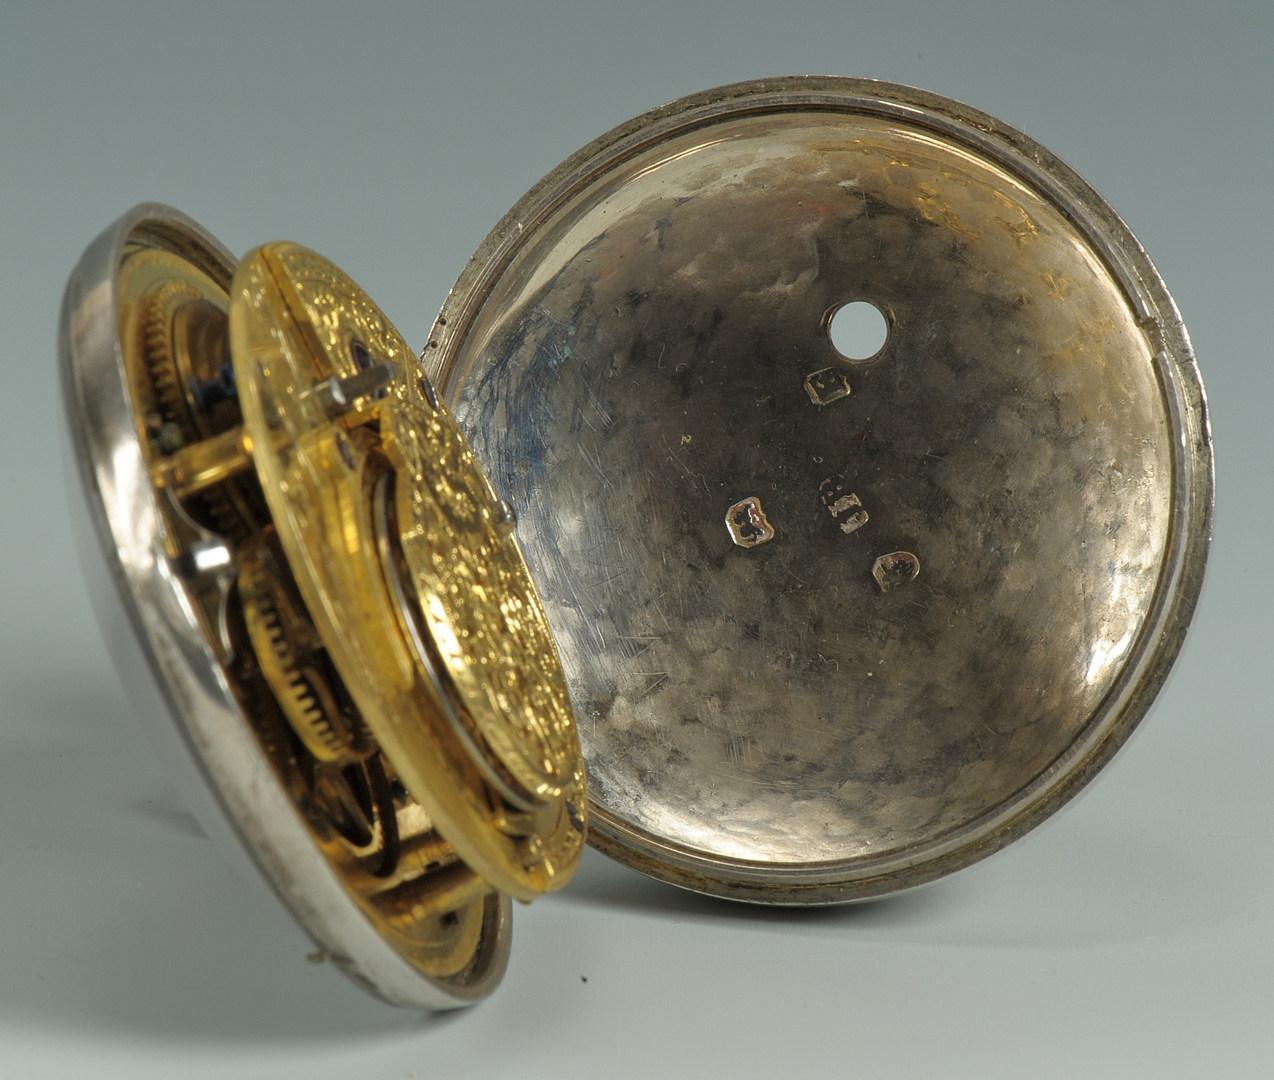 Lot 53: Perrenoud Pocketwatch, Baltimore Retail Label